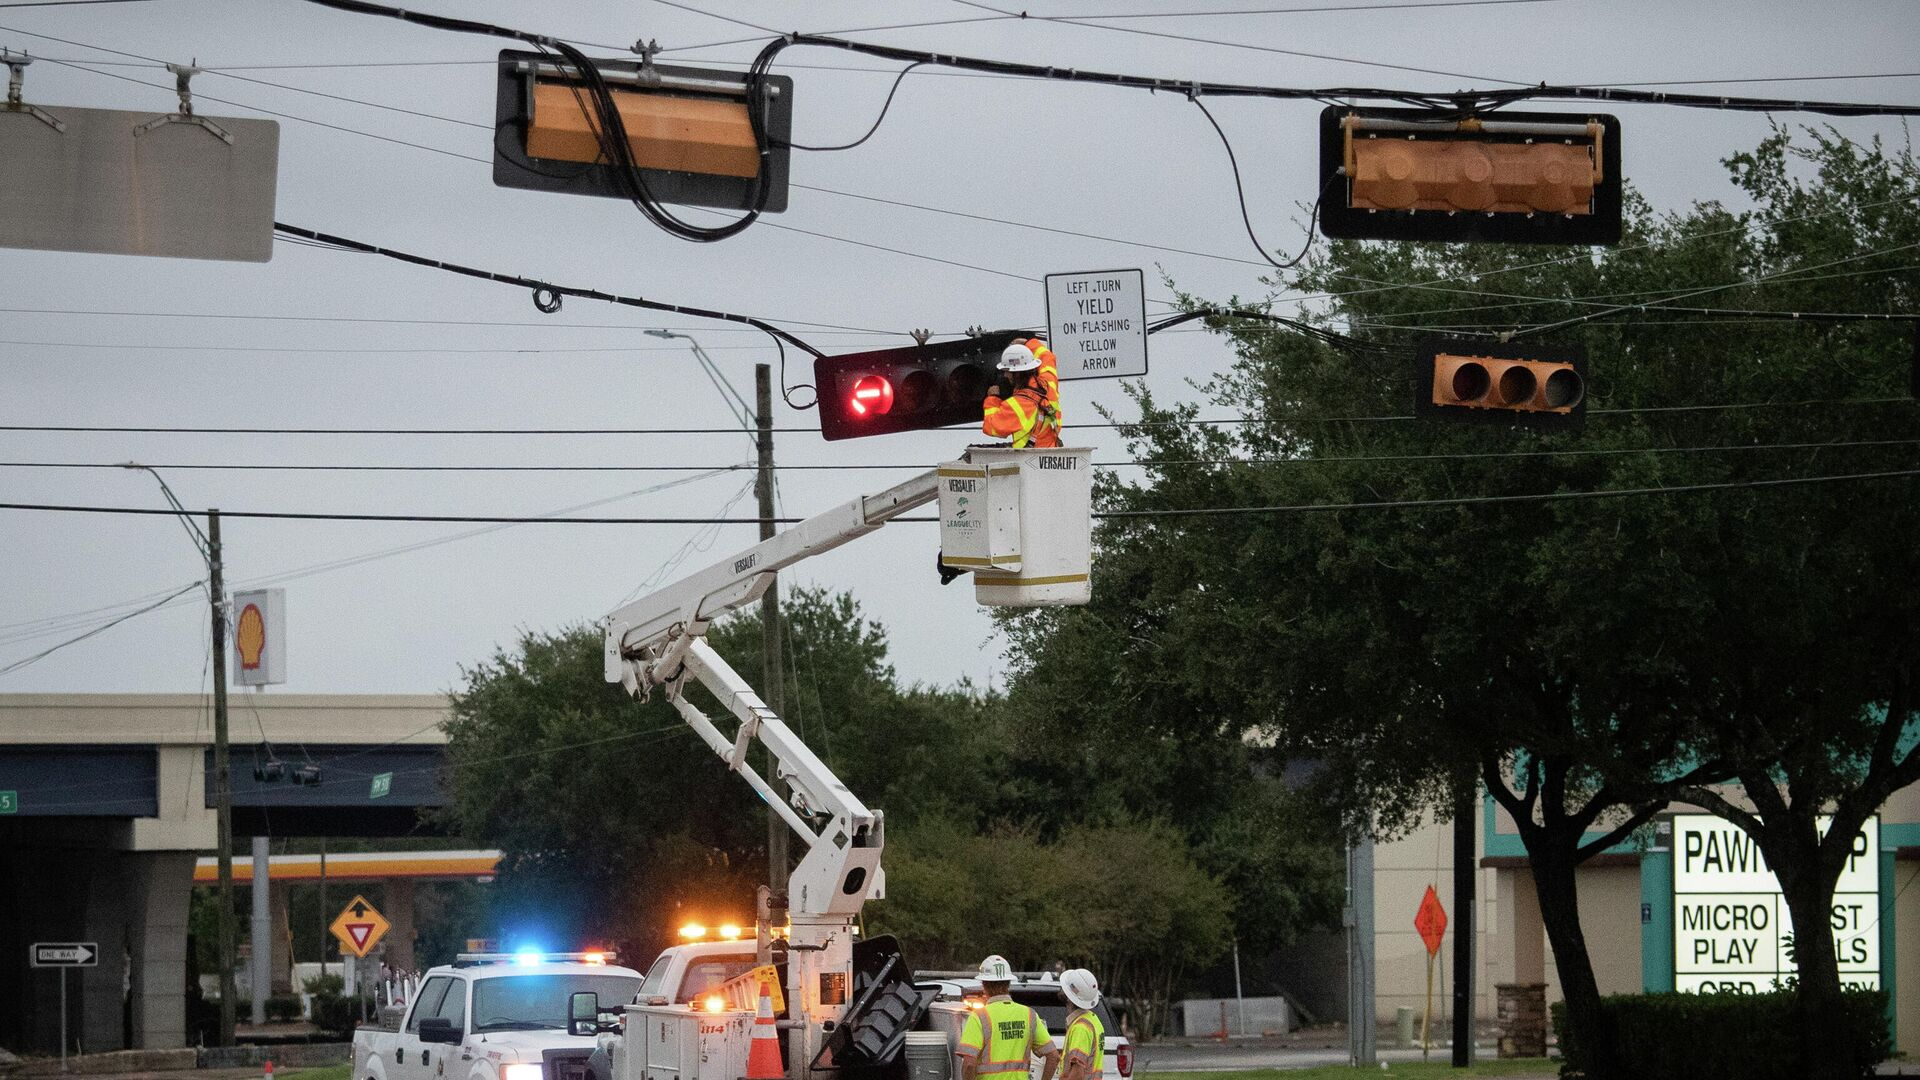 A crew restore power to traffic lights in the aftermath of Hurricane Nicholas in League City, Texas, U.S., September 14, 2021 - Sputnik International, 1920, 14.09.2021